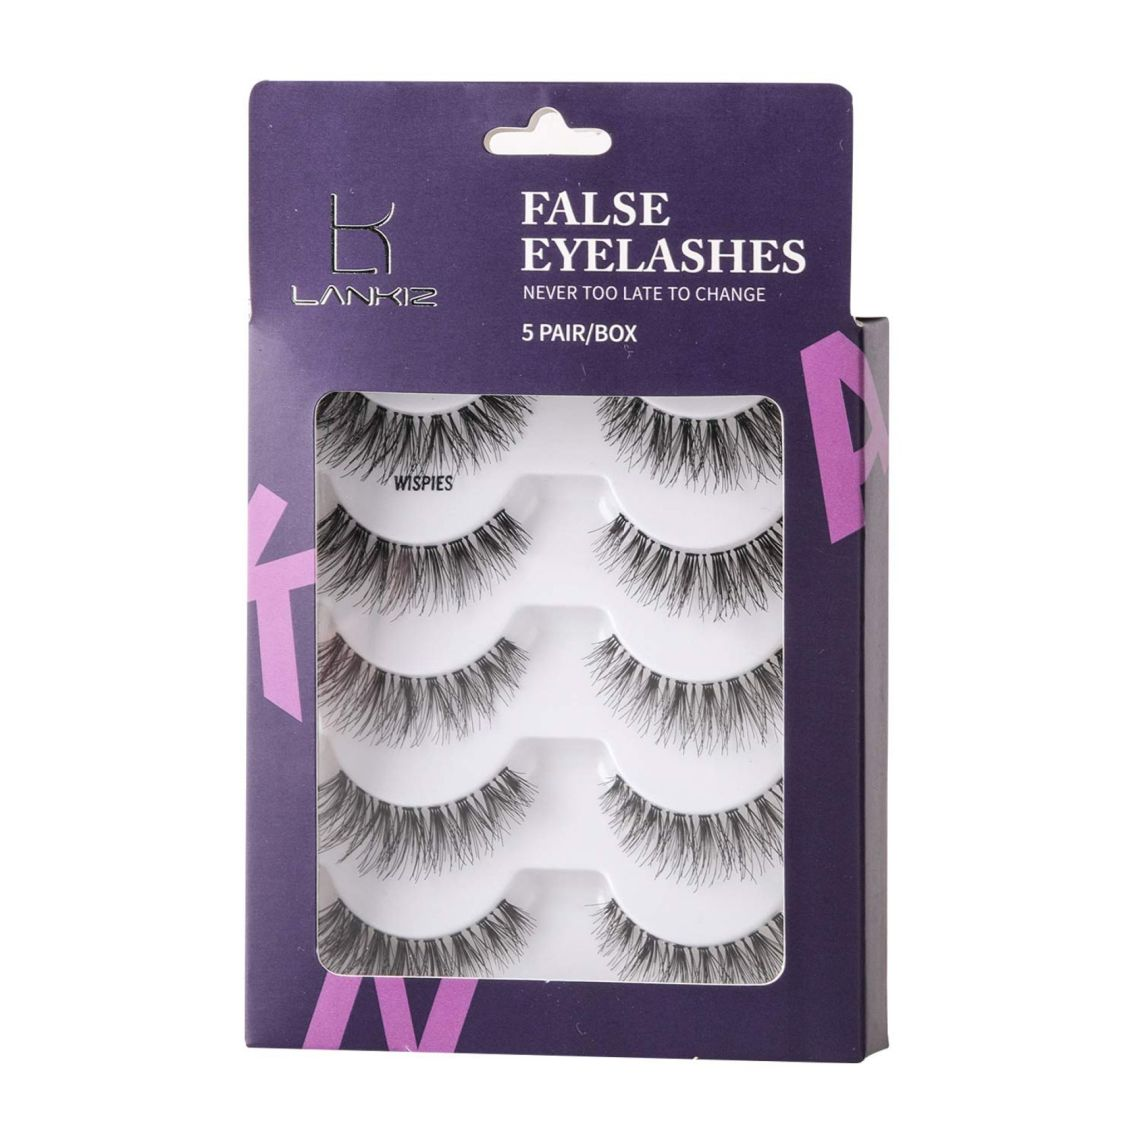 Amazon.com : 5 Pairs 3D False Eyelashes Flexible Demi Wispies False Lashes Reusable Handmade Cross Fake Eye Lashes for Makeup Natural Looking Black Eyelashes LK LANKIZ (WISPIES) : Beauty